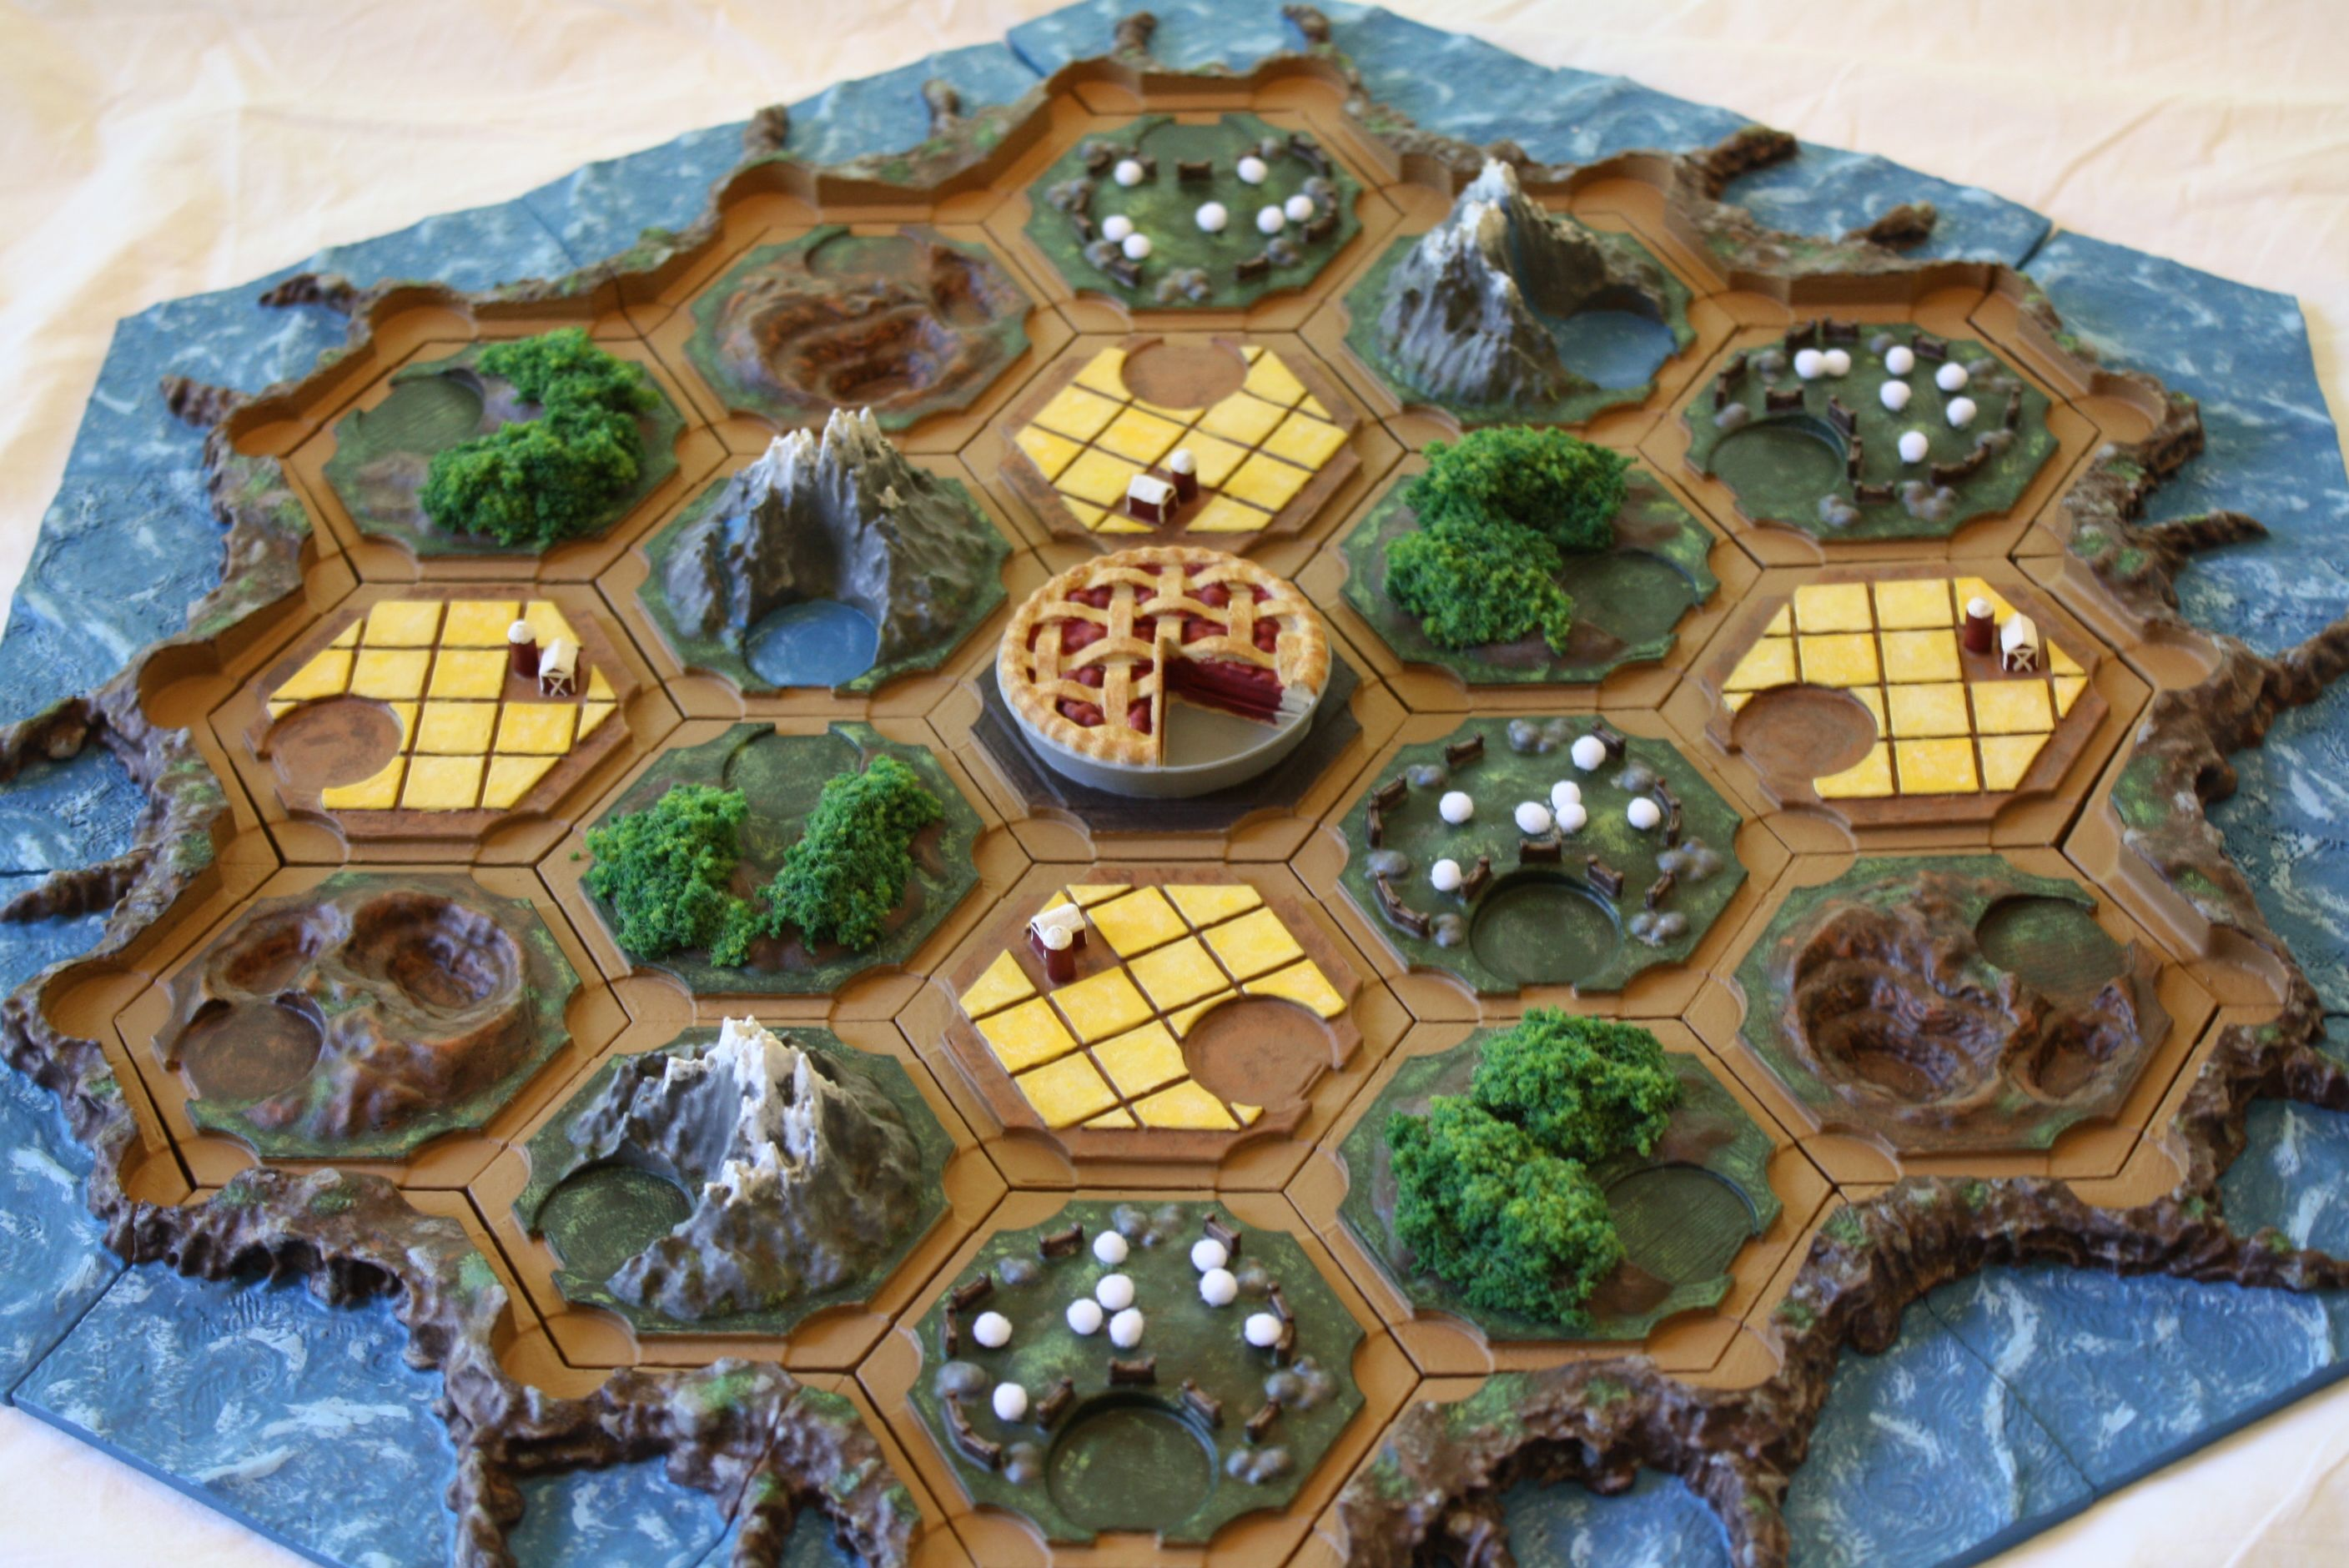 My Friends And I Love Settlers Of Catan But I Was Always Annoyed When That One Guy Bumped The Board And Messed It Up To S Settlers Of Catan Catan Board